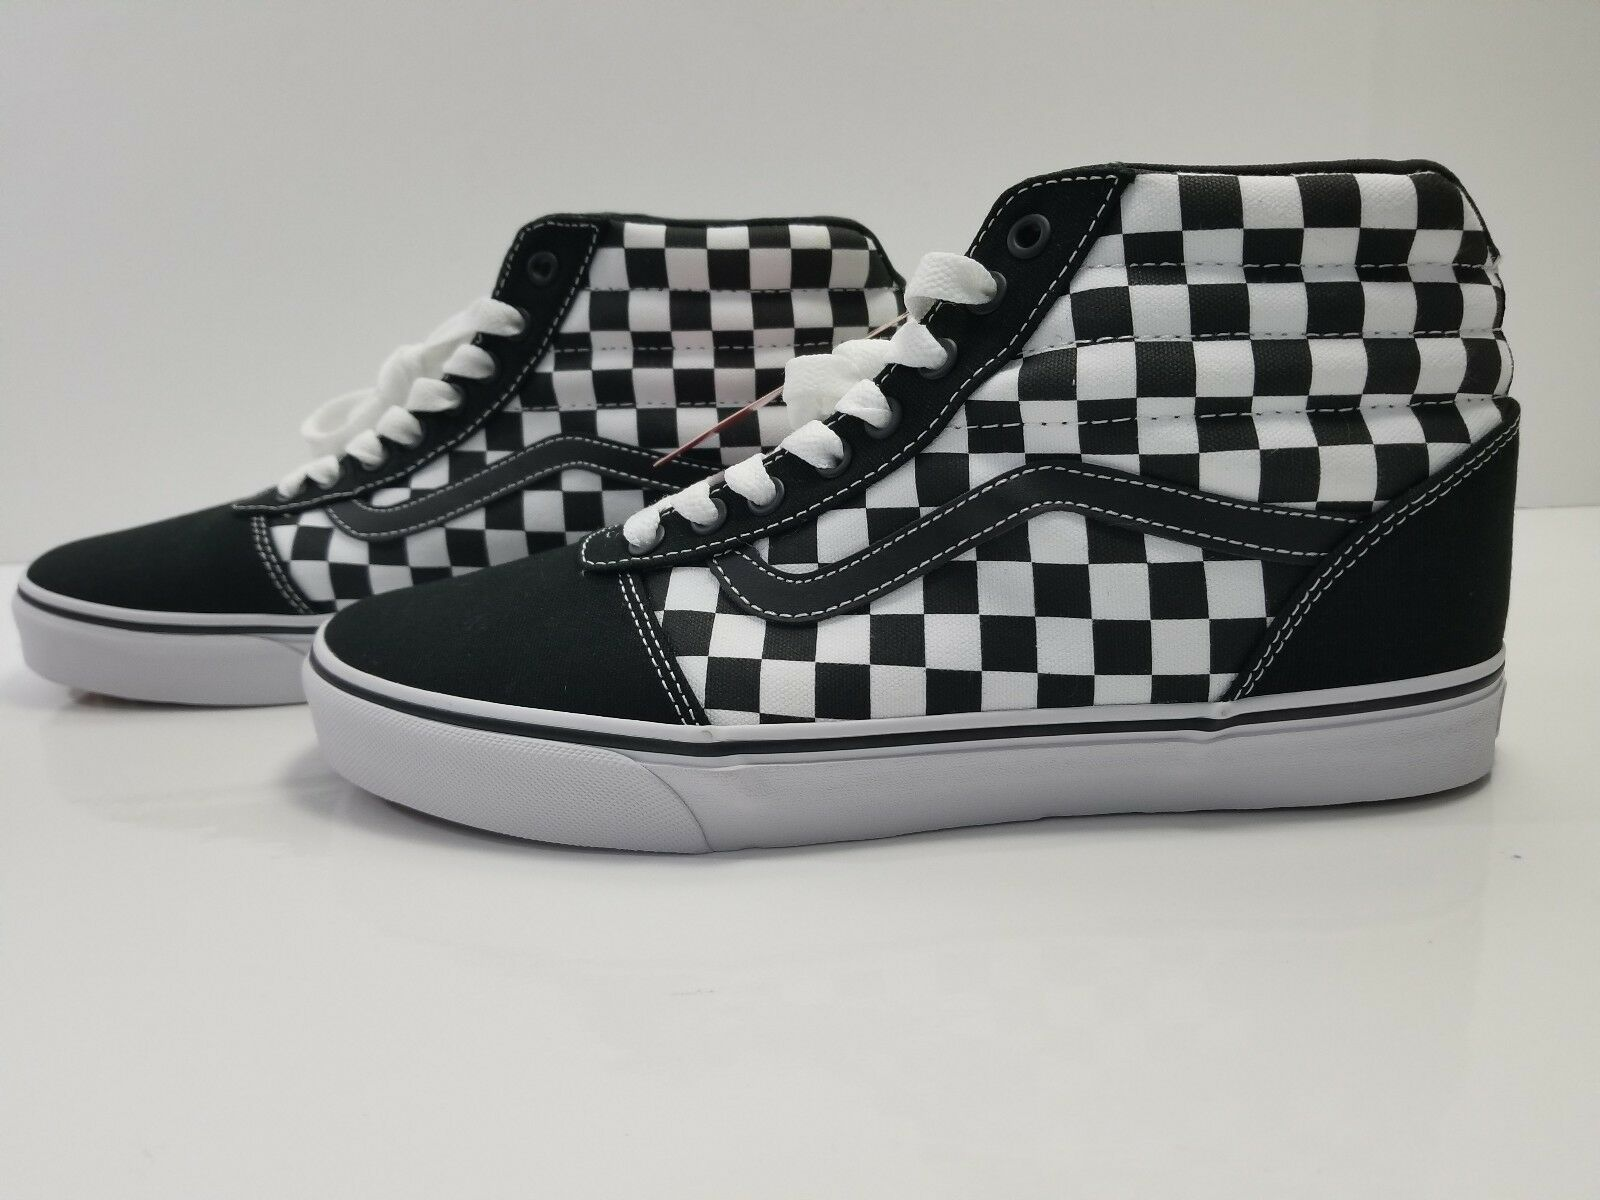 New Vans ward Hi Checkerboard 1Black   White Size  11M US VN0A38DN5GX